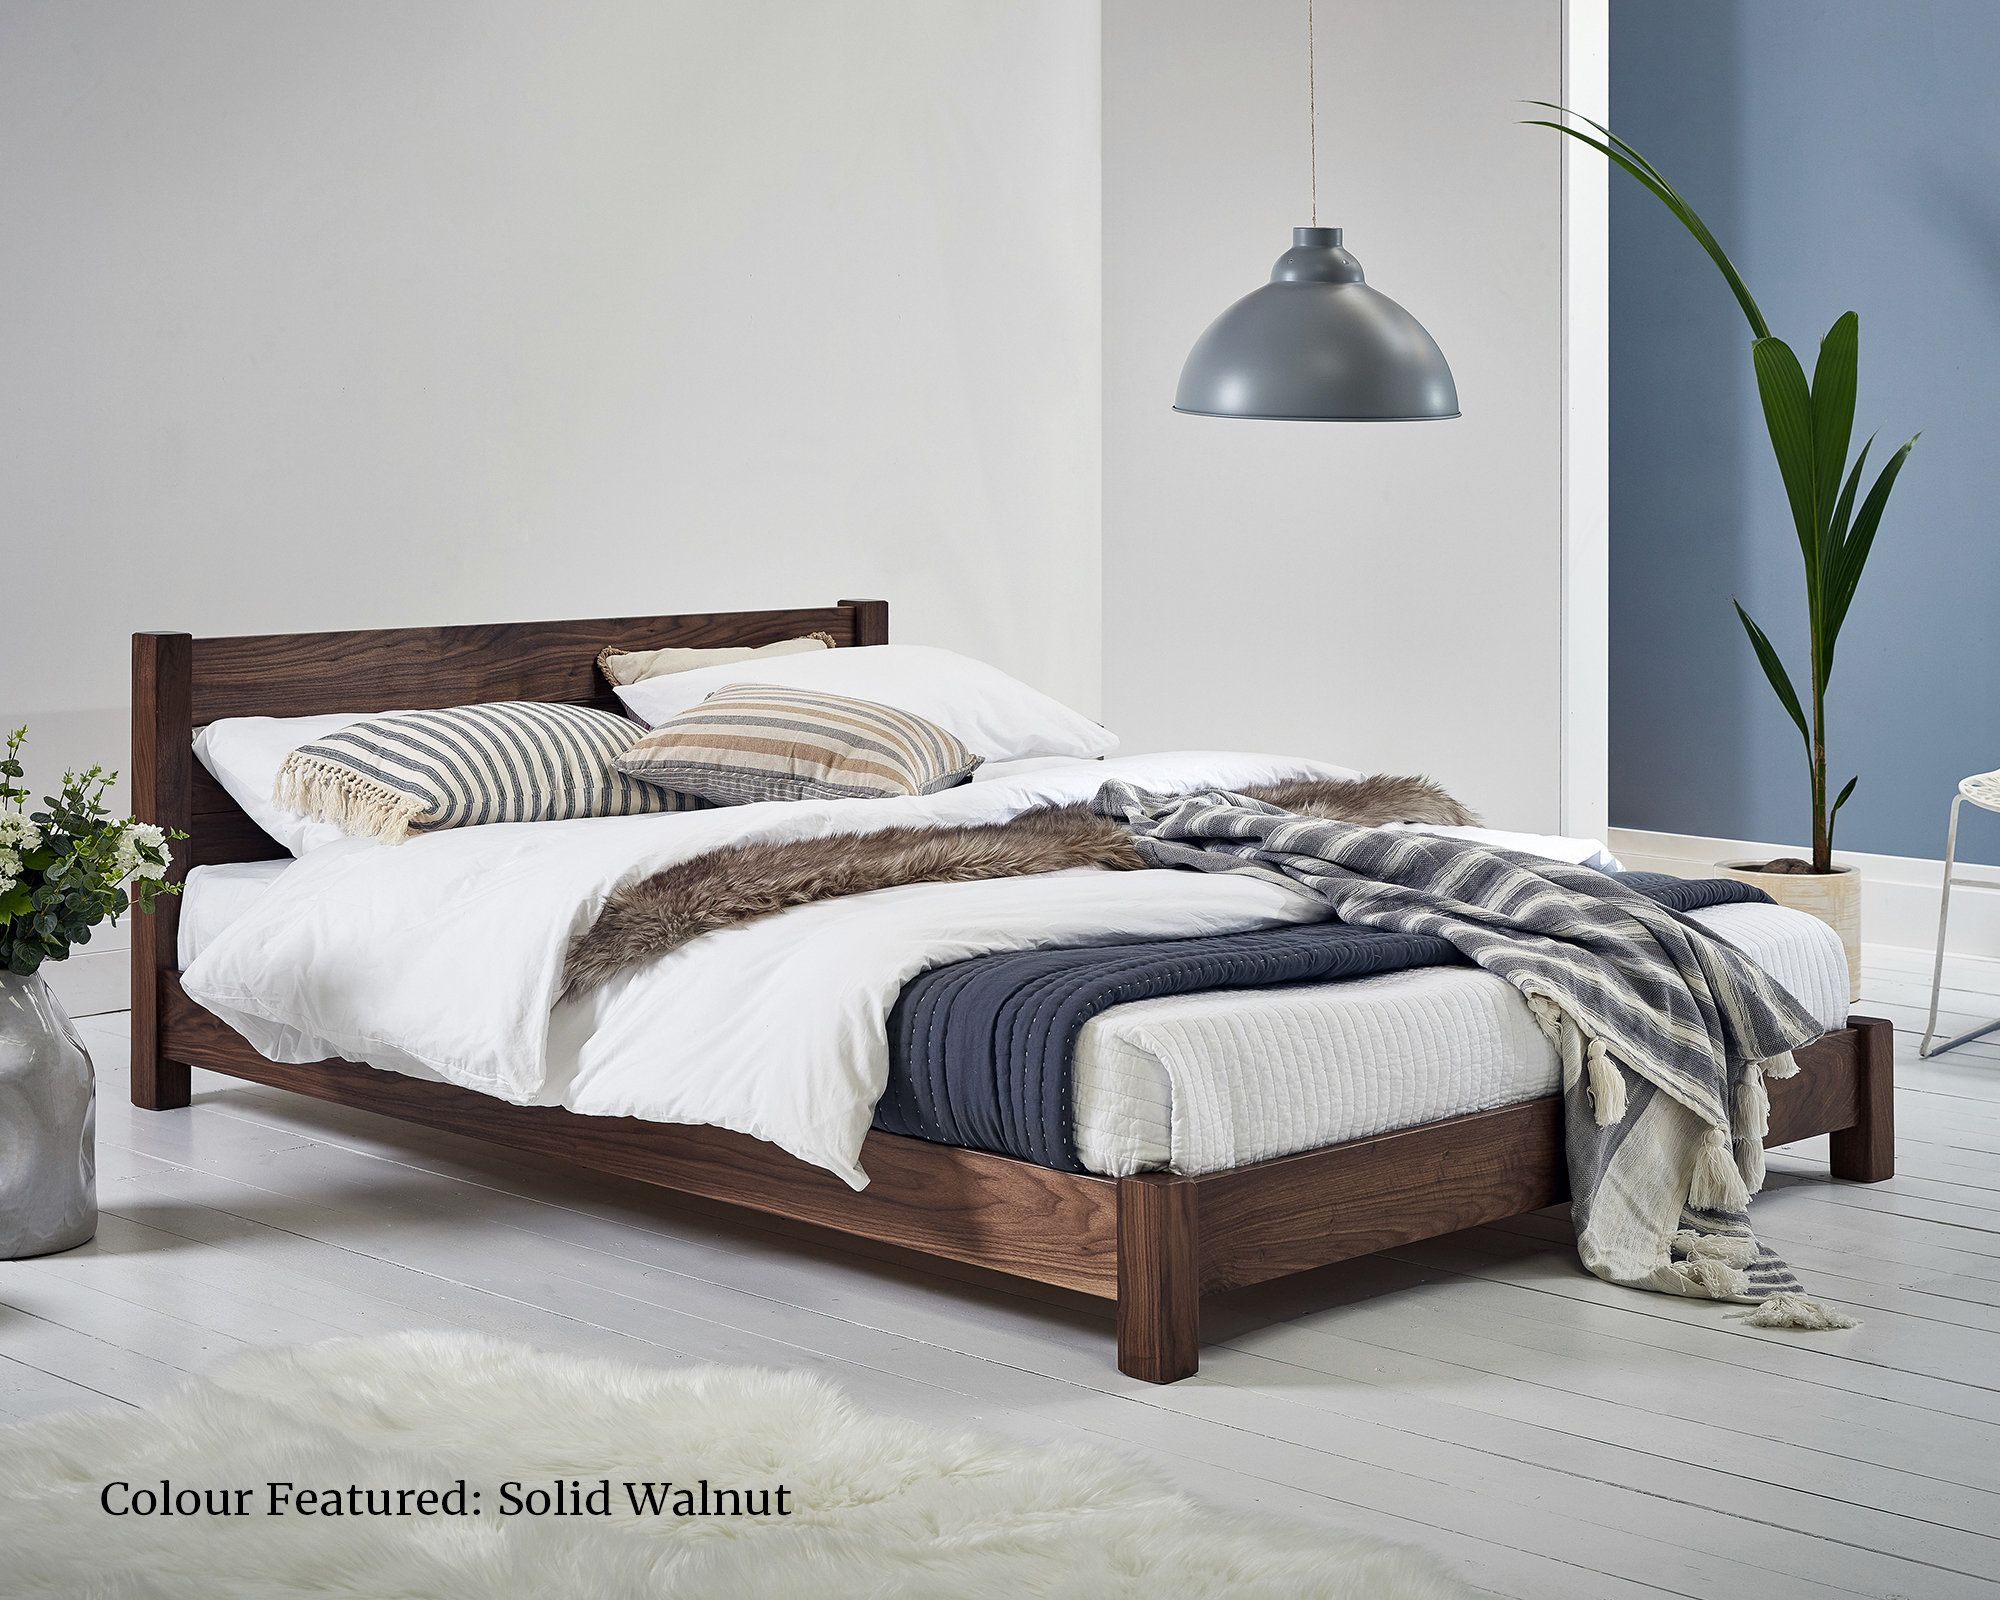 Low Tokyo Wooden Bed Frame By Get Laid Beds In 2020 Low Bed